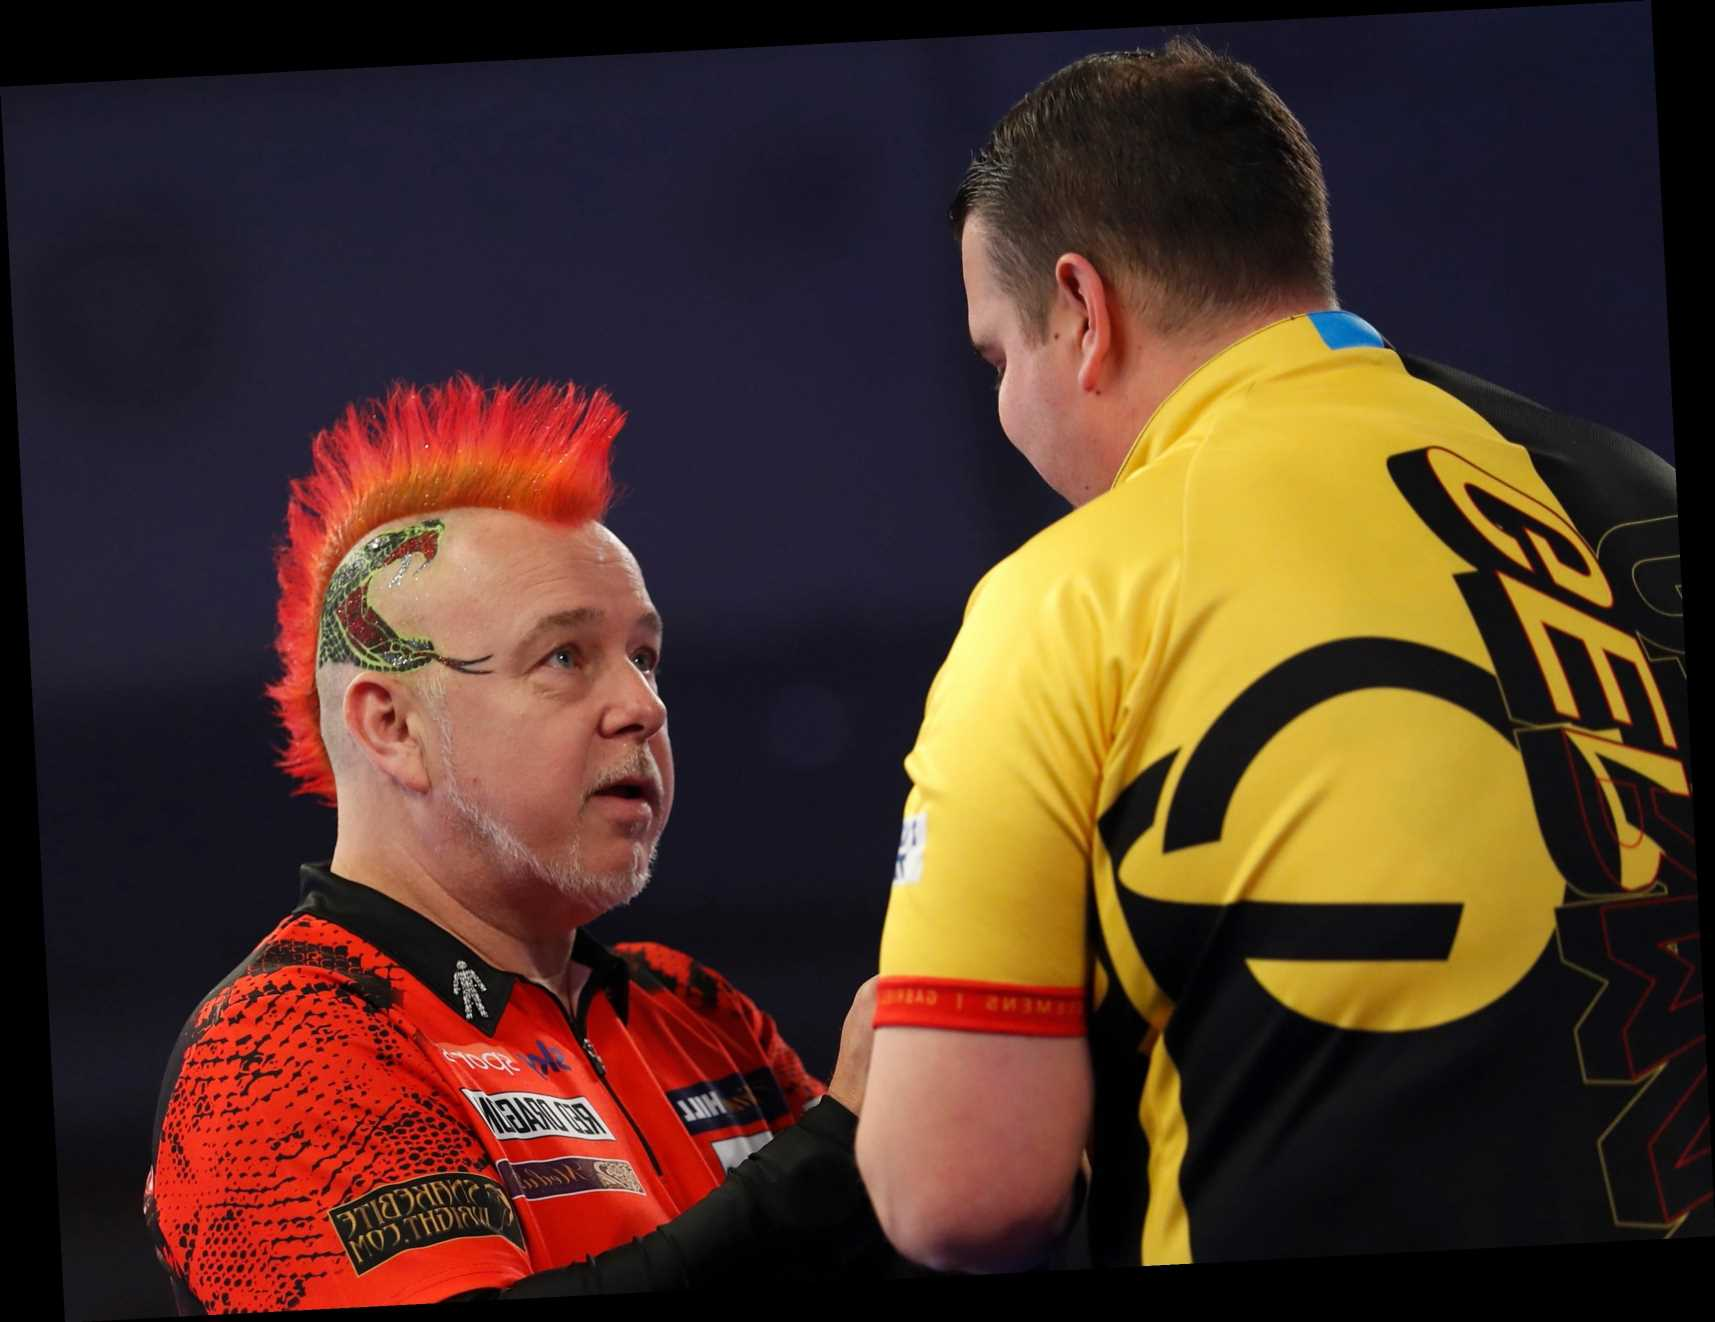 PDC World Darts Championship: Defending champion Peter Wright suffers shock third-round exit